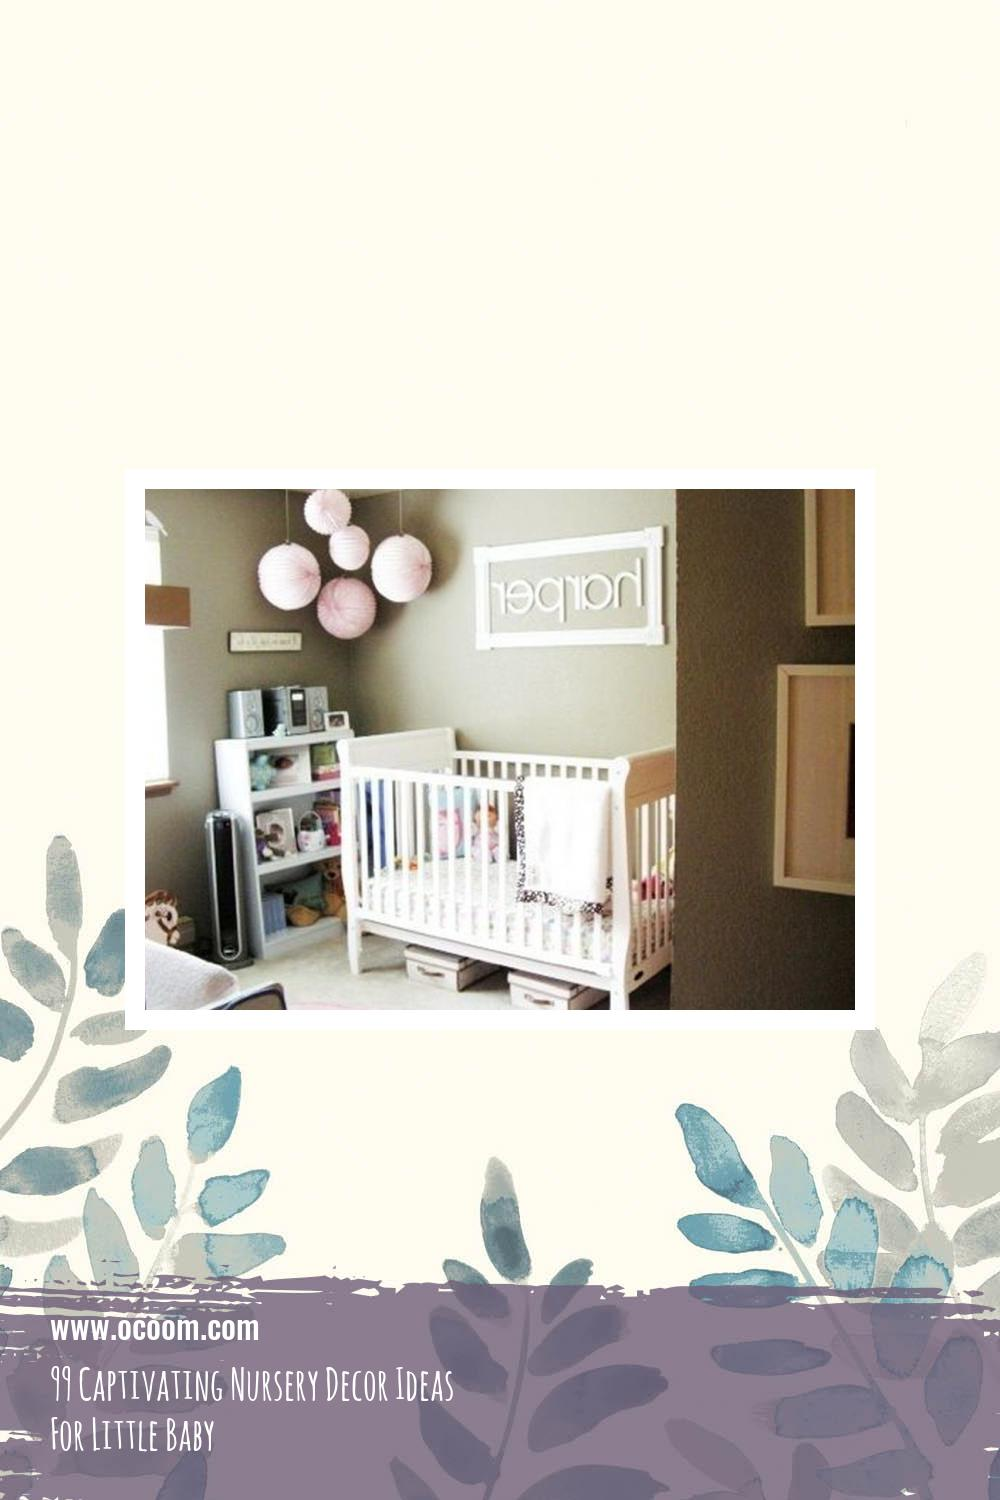 99 Captivating Nursery Decor Ideas For Little Baby 15